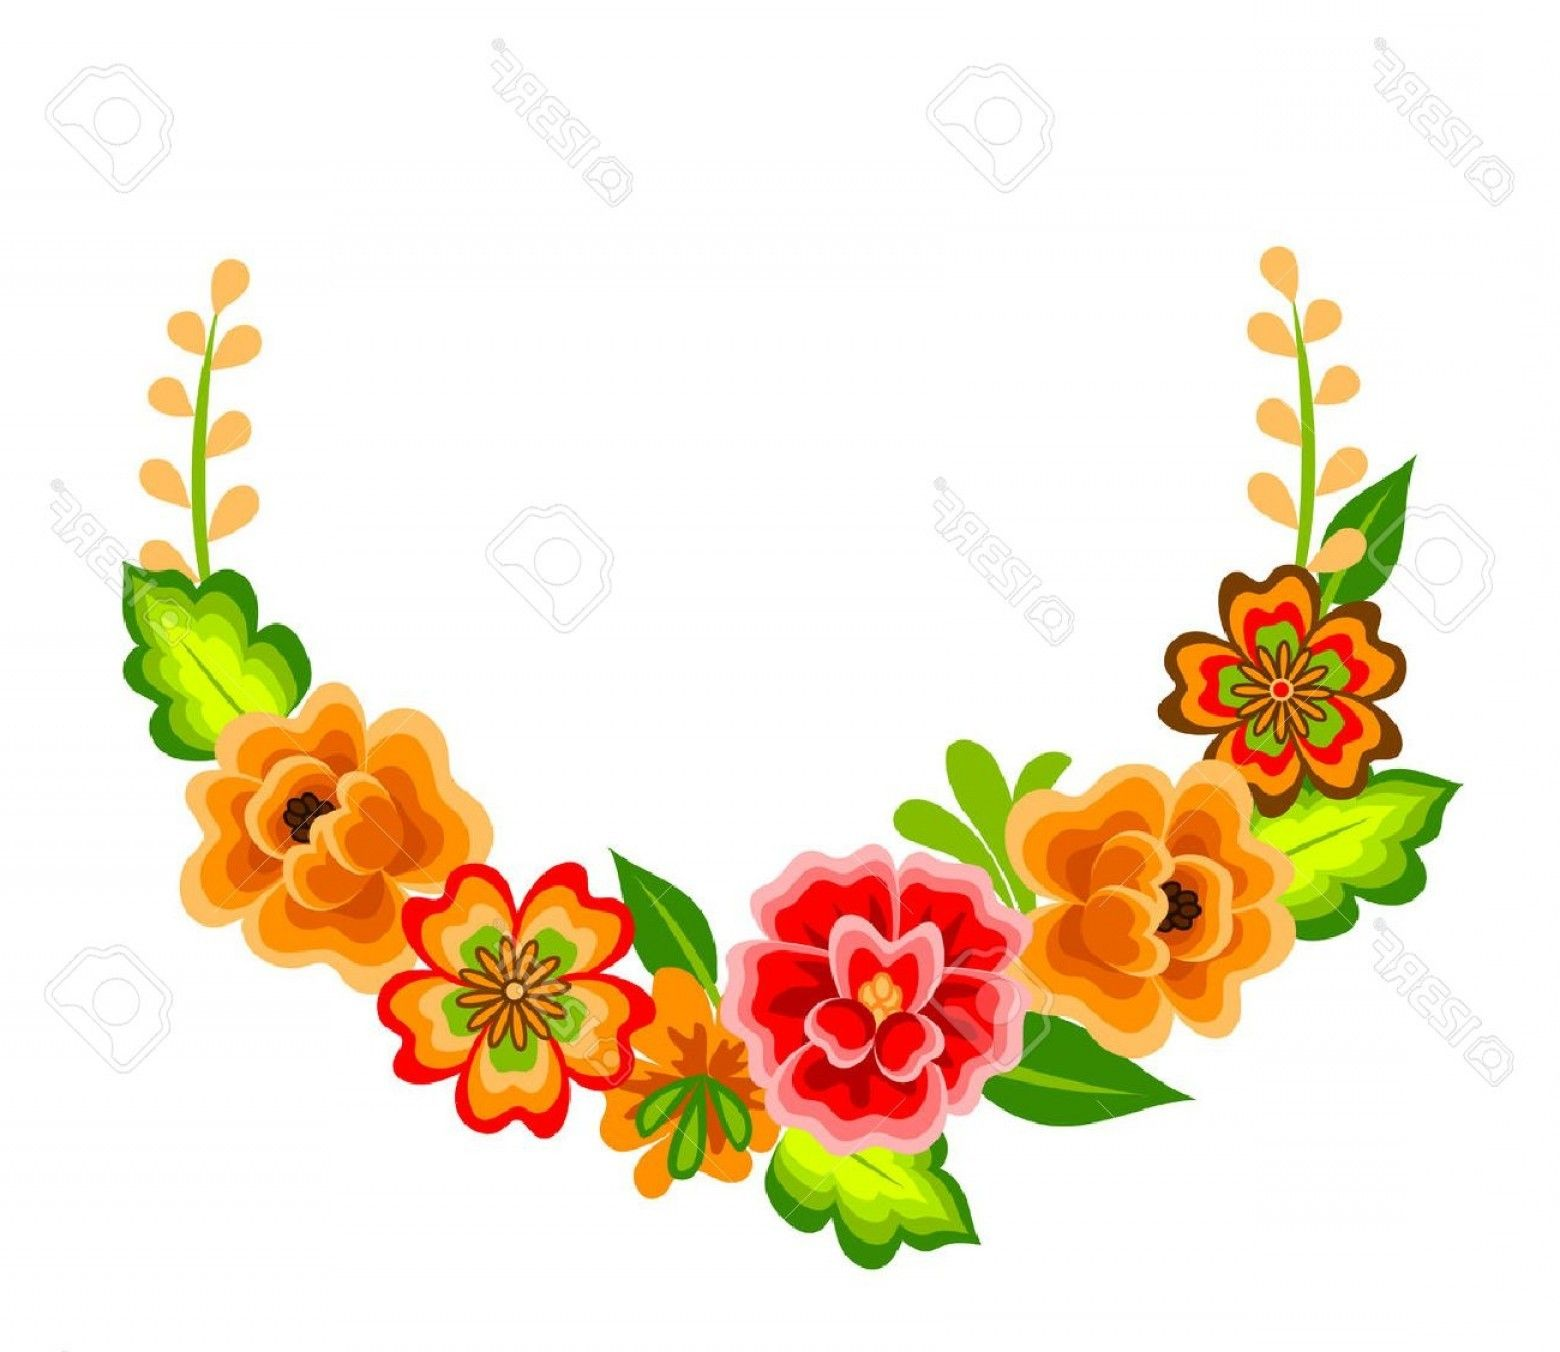 Pin By Designer Pposh On Events Decorative Flower Border Mexican Flowers Flower Border Png